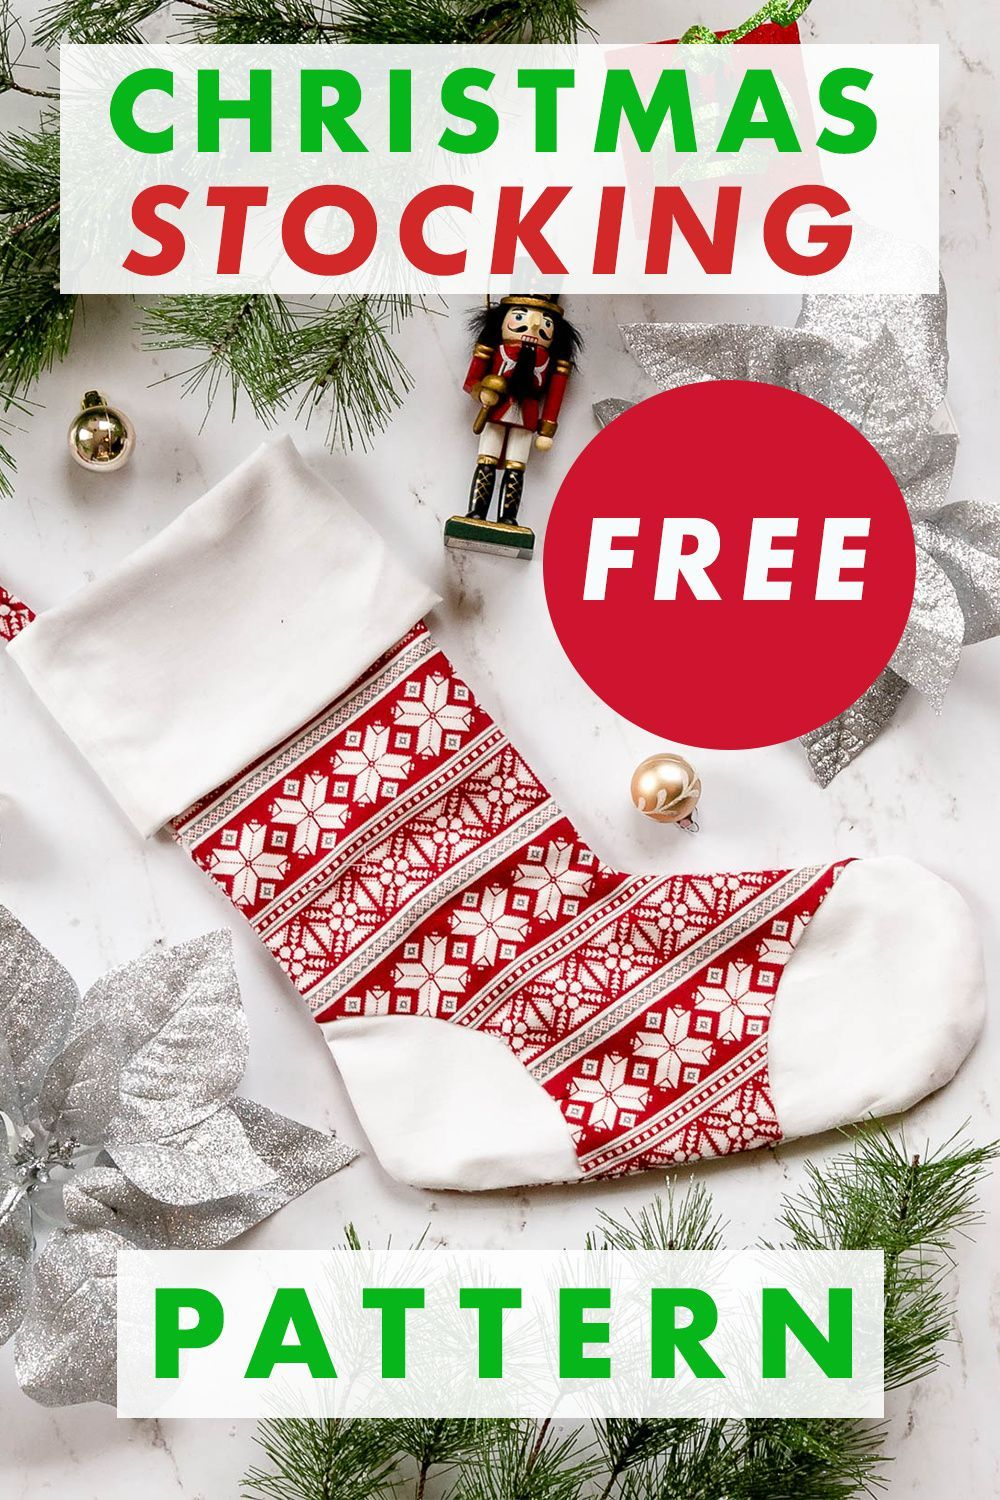 Free Christmas Stocking Sewing Pattern With Toe Patch Christmas Stockings Christmas Stockings Sewing Christmas Sewing Patterns